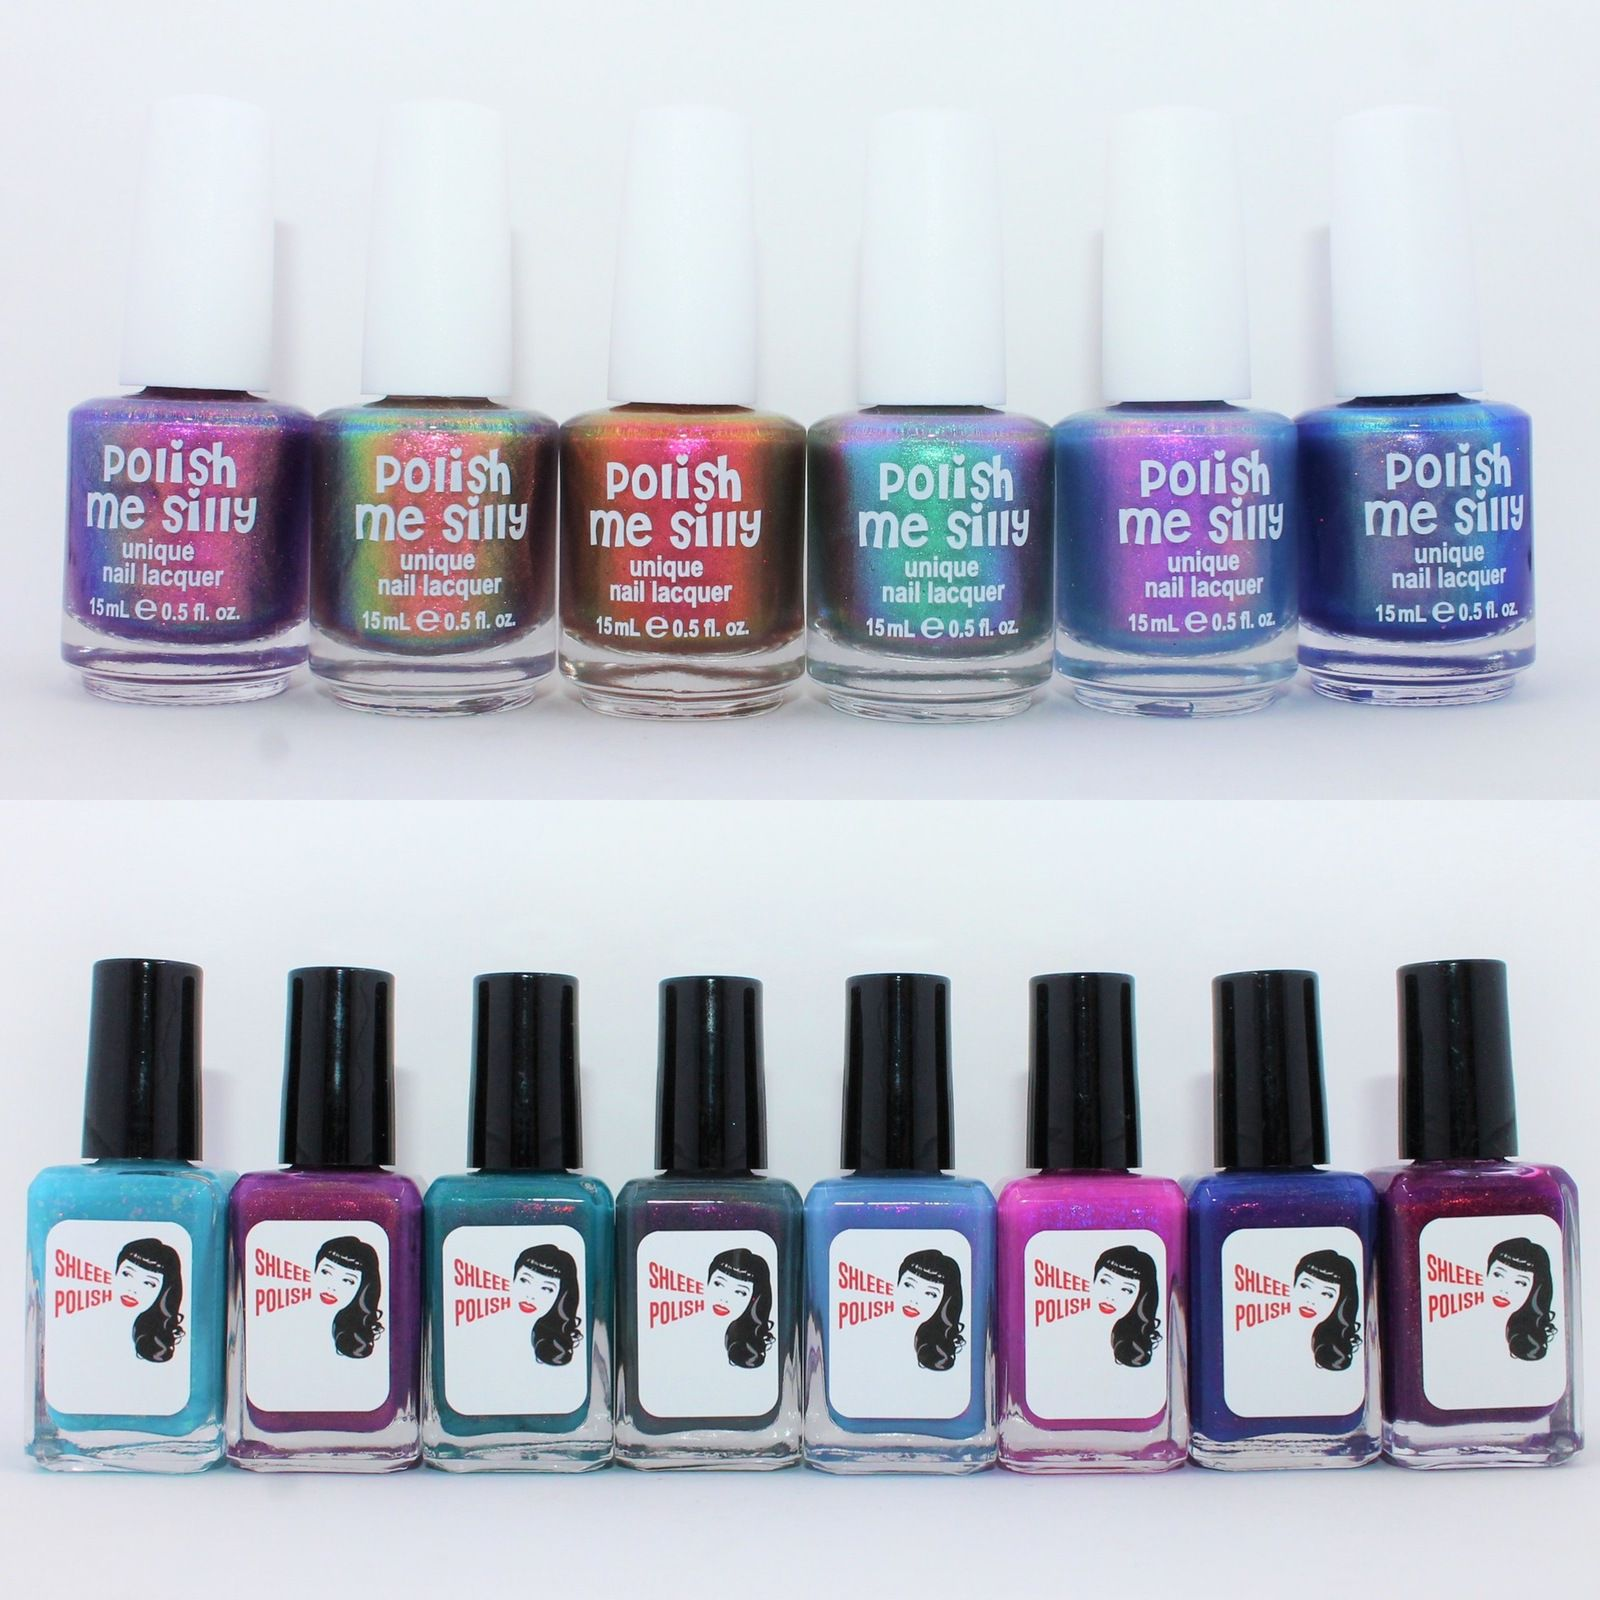 Polish Me Silly Glow Pop Collection Part 3 - Prism Glow, 24 Hour Glow, Gotta Glow, Glow Getter, Twilight Glow, Cotton Candy Glow. Shleee Polish Flashback, Things We Do For Love, Daydreamer, Conjure, Close Your Eyes, Flamingo Topaz, Mood, Vamp Style.